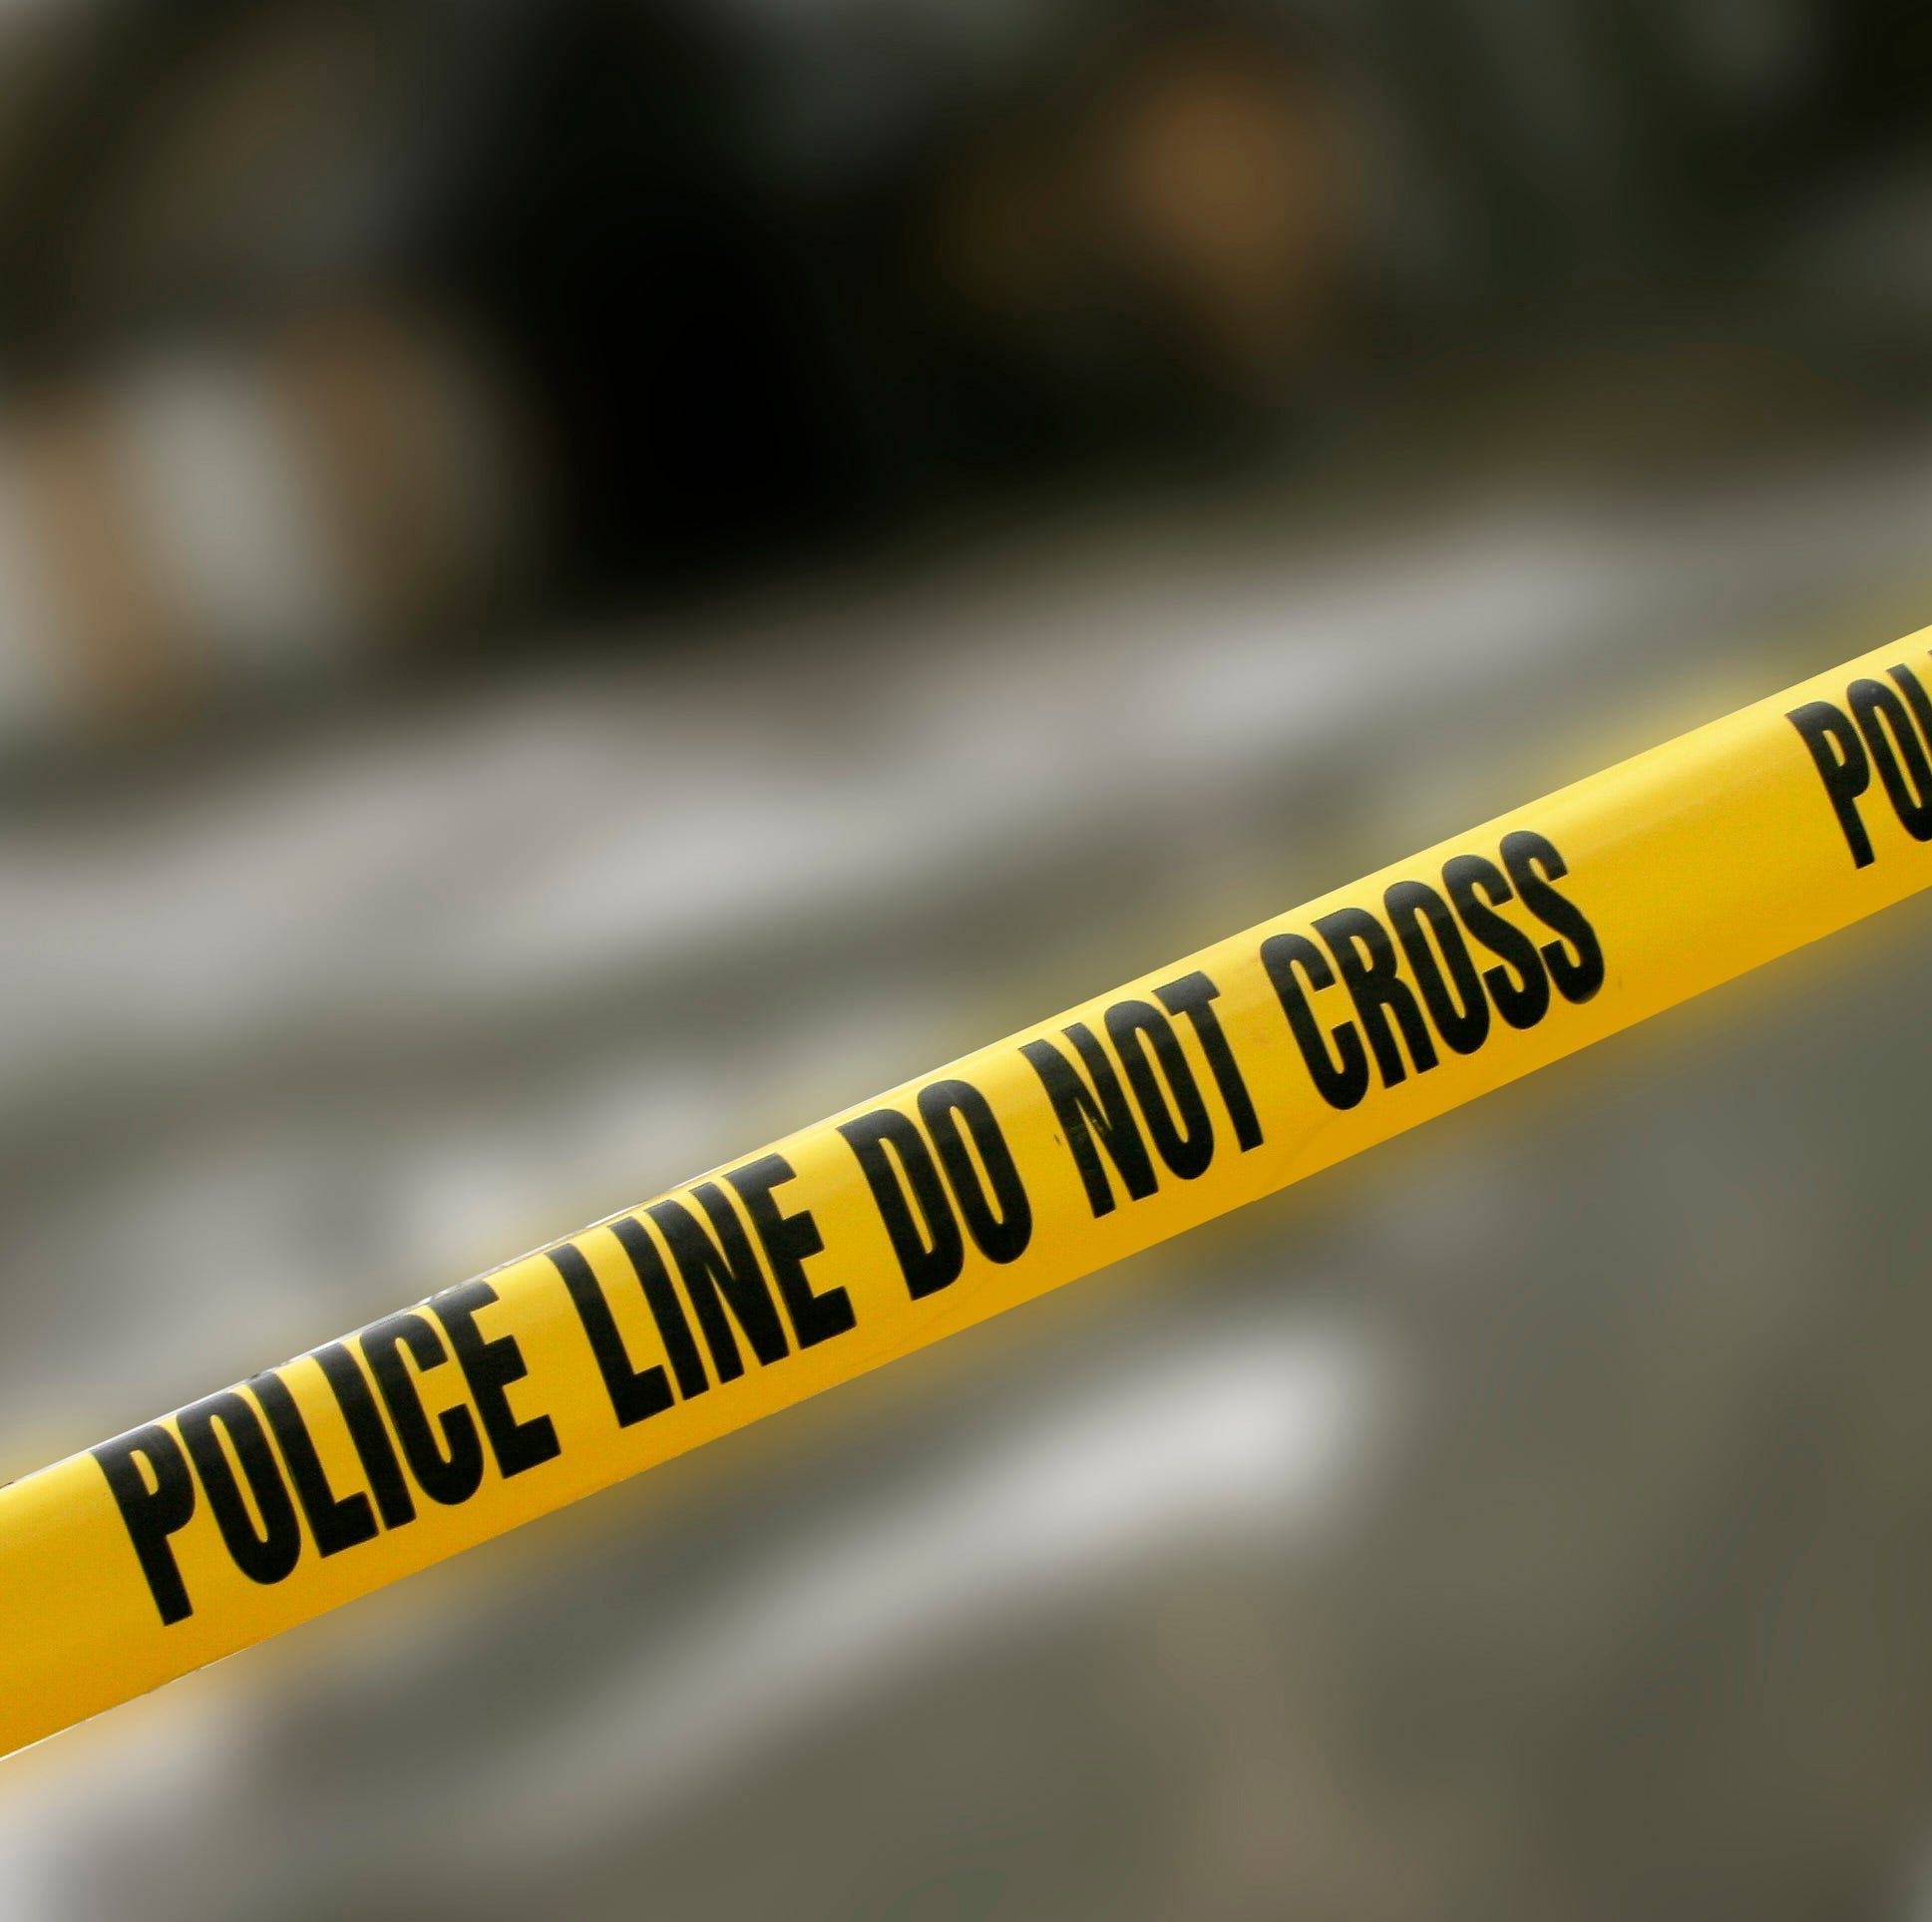 Quadruple shooting leaves 1 dead in Detroit